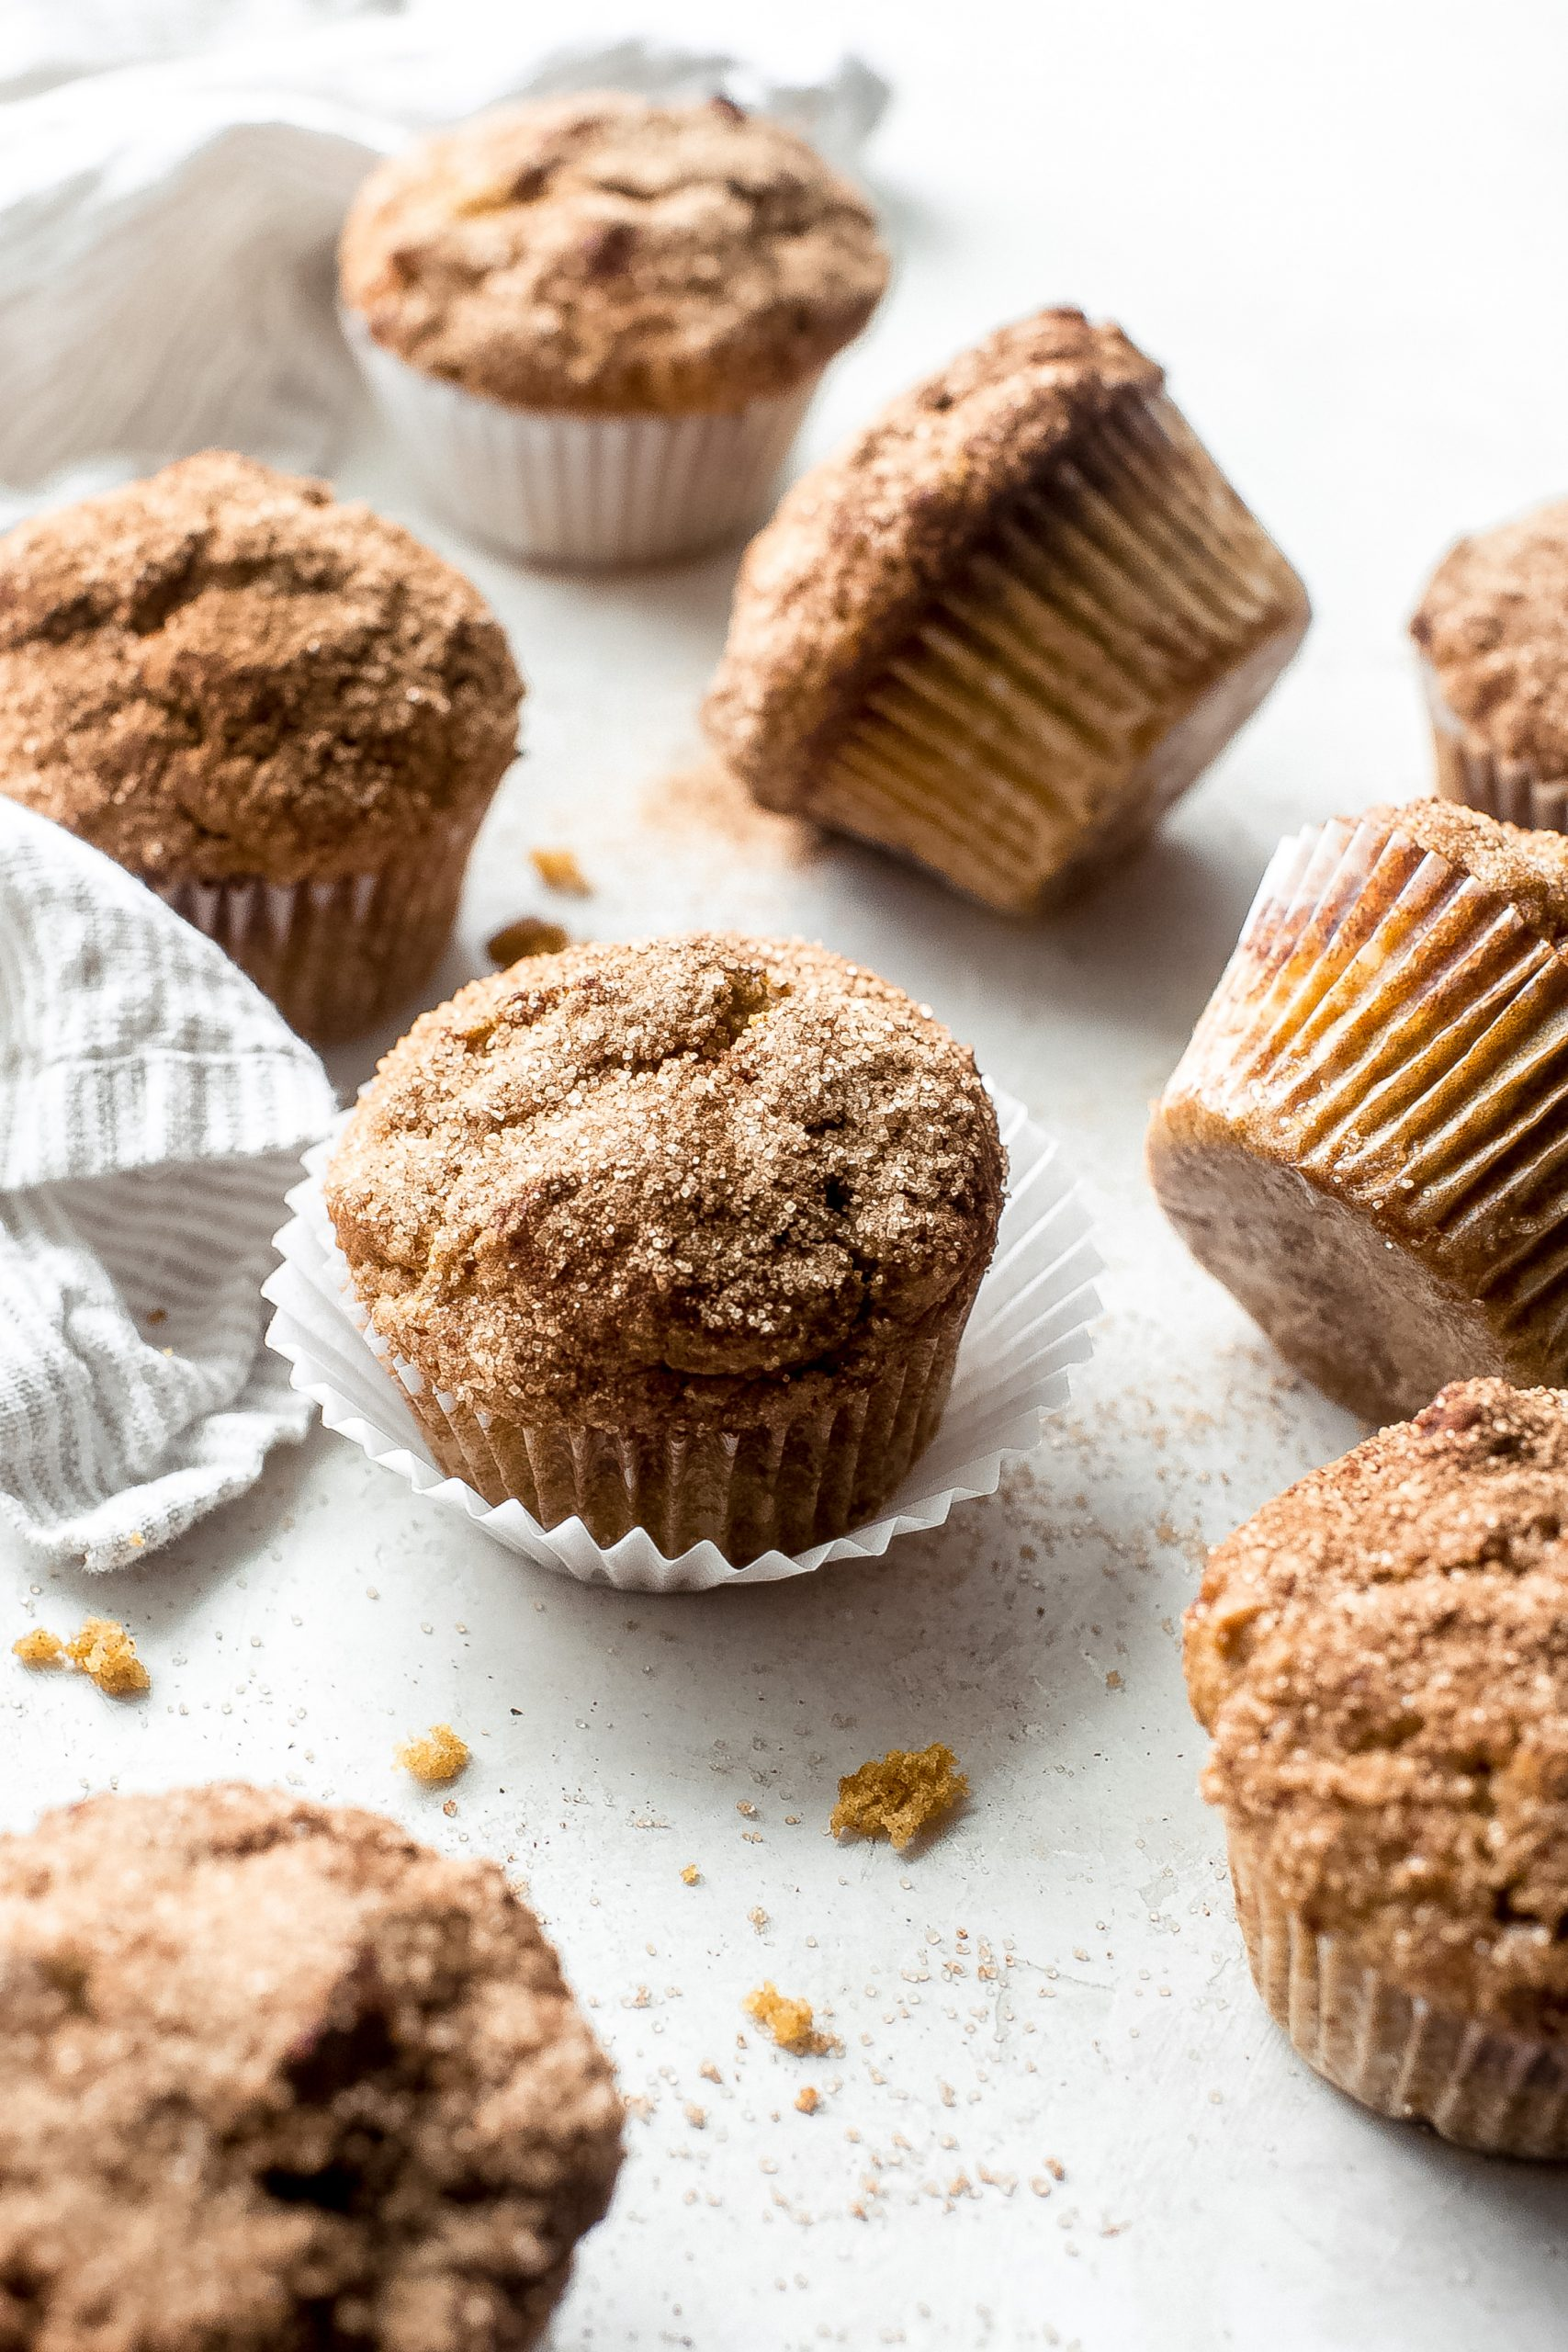 scattered muffin paper-lined pumpkin snickerdoodle muffins on a white surface